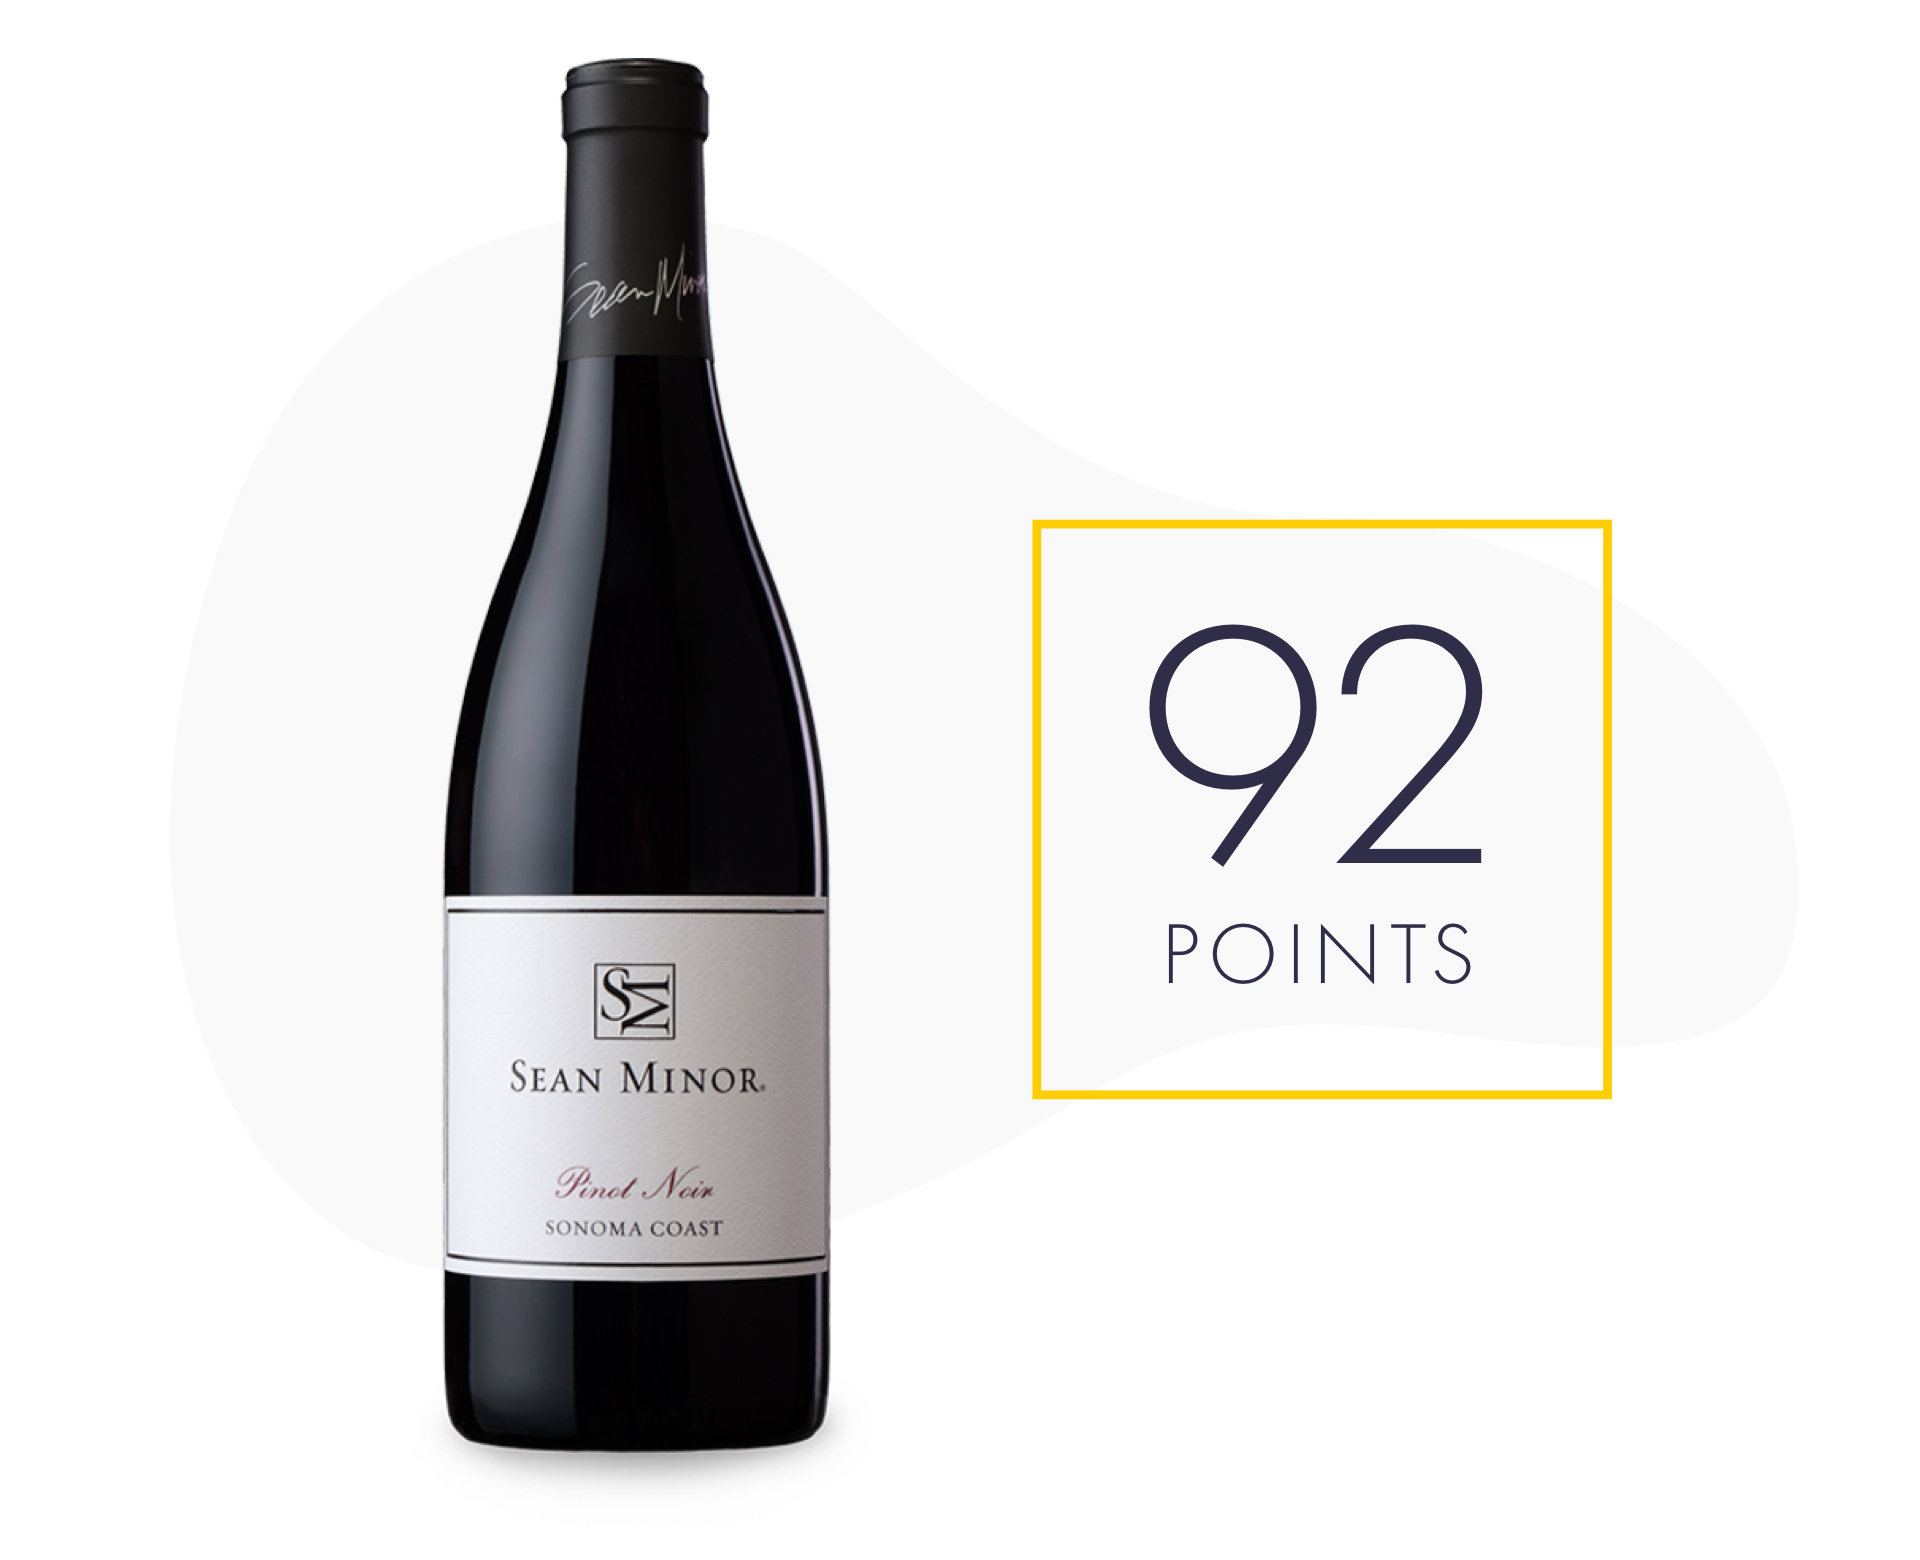 A bottle of the 2019 Sean Minor Pinot Noir with